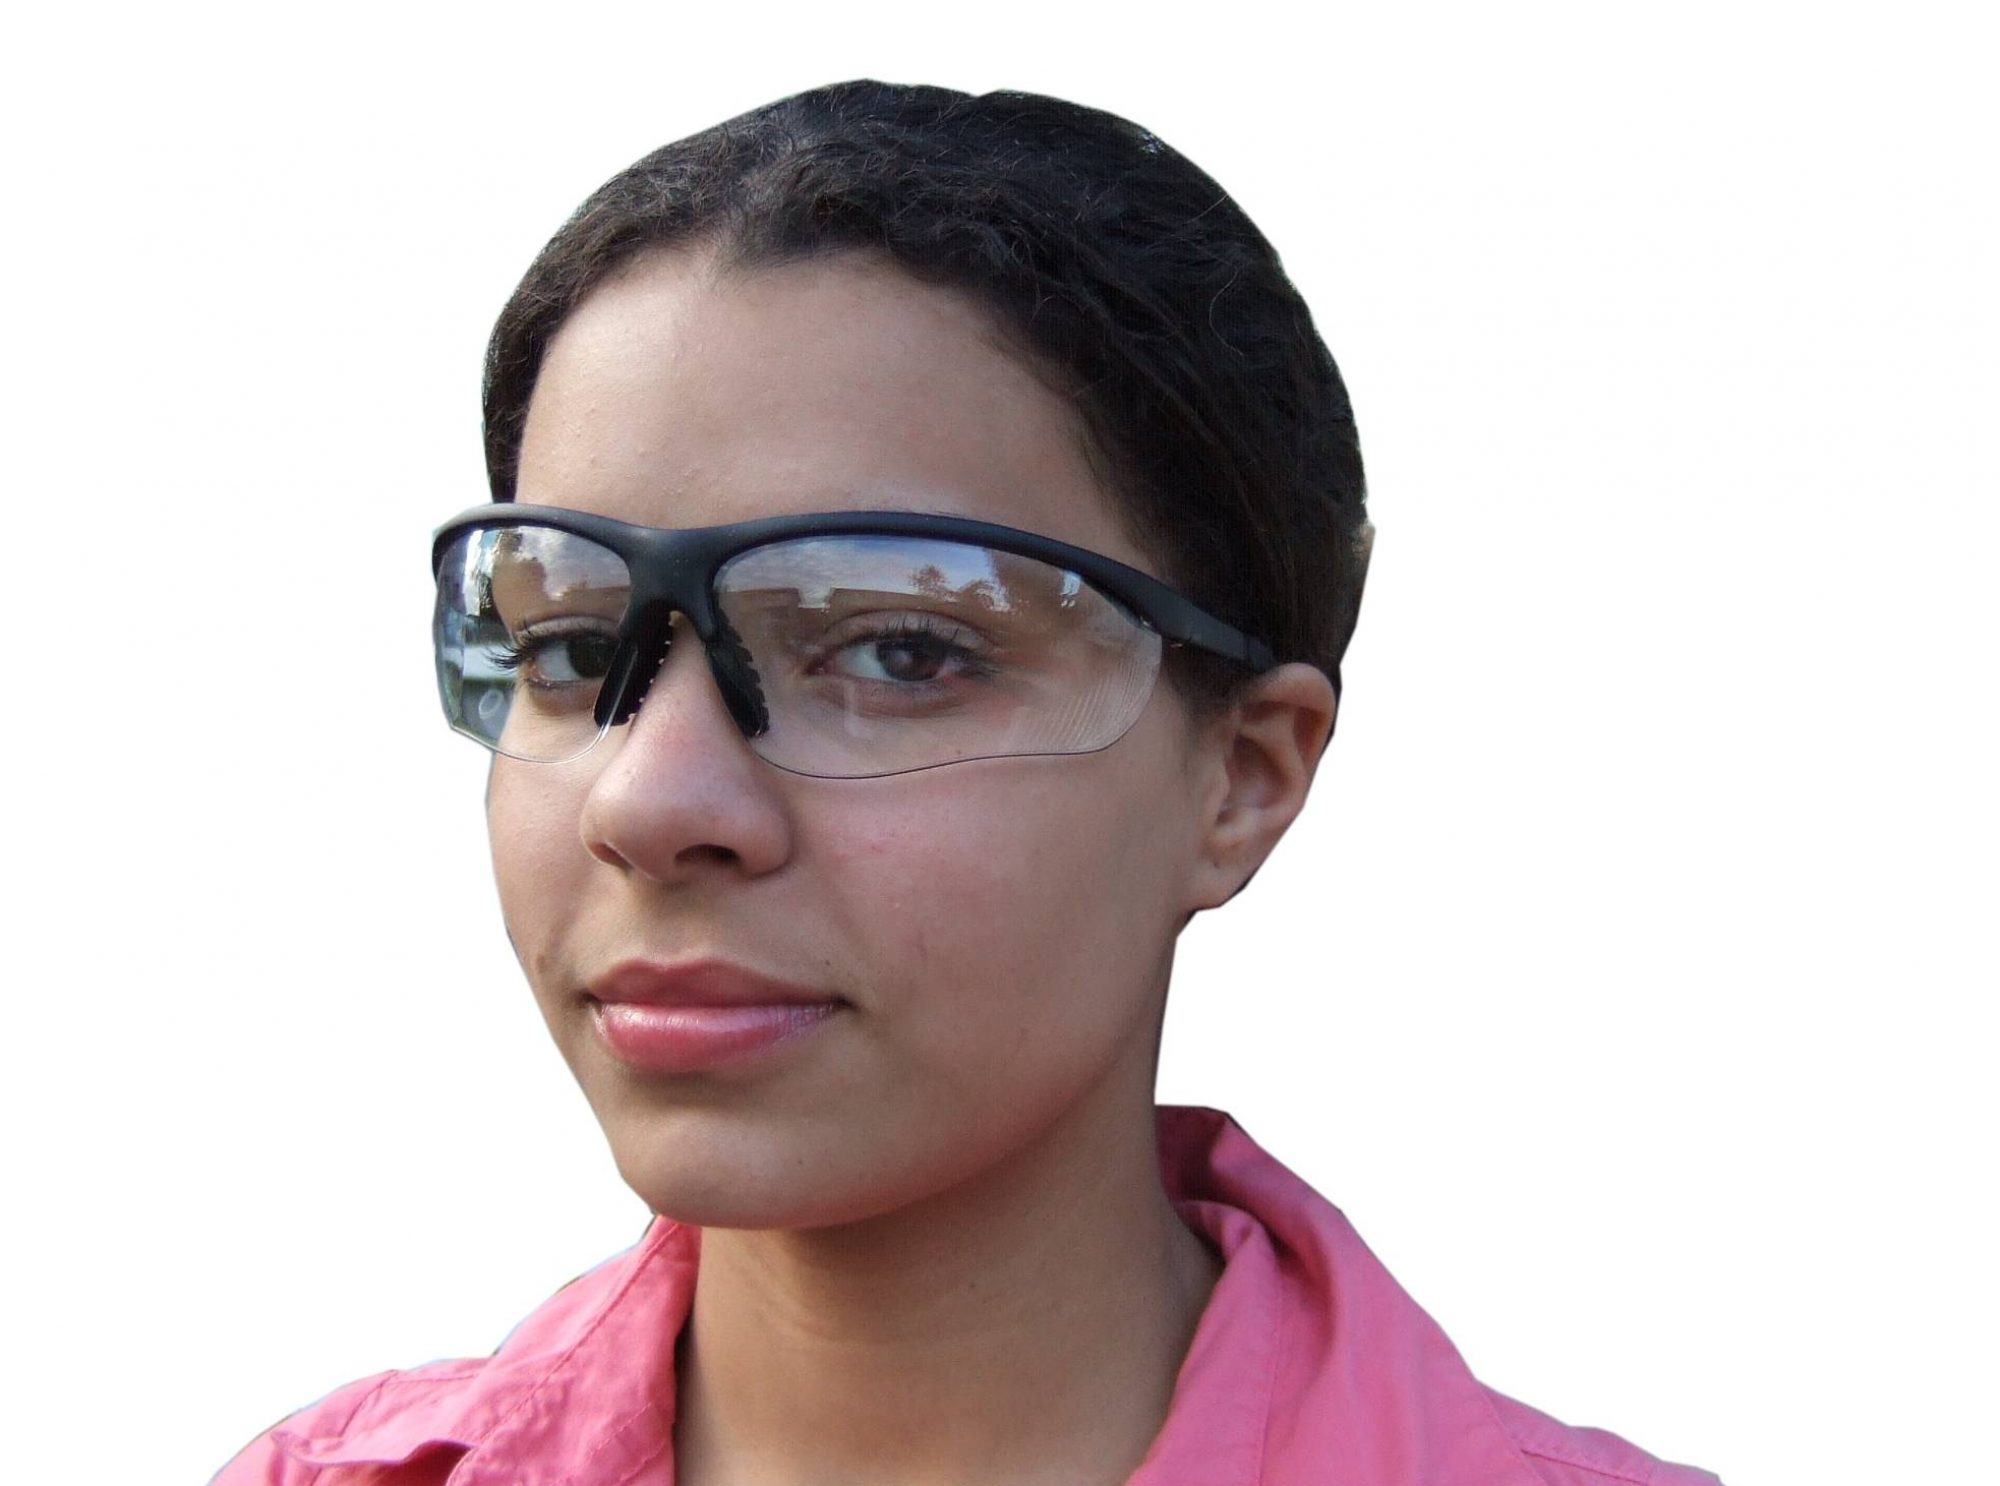 Safety glasses for the workers.